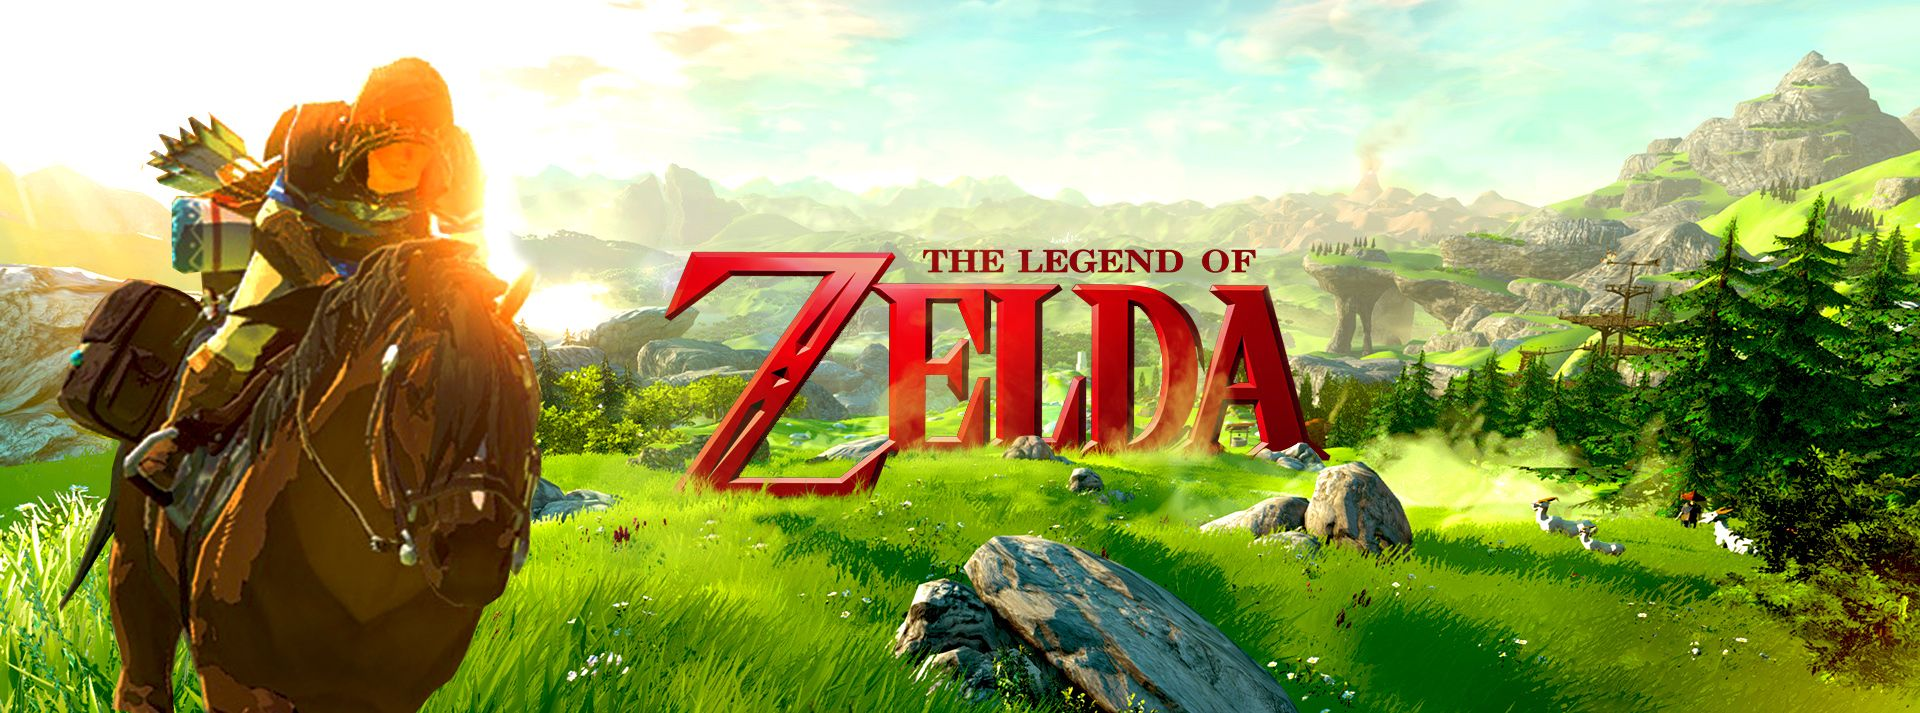 The Legend Of Zelda Delayed To 2017 Will Launch